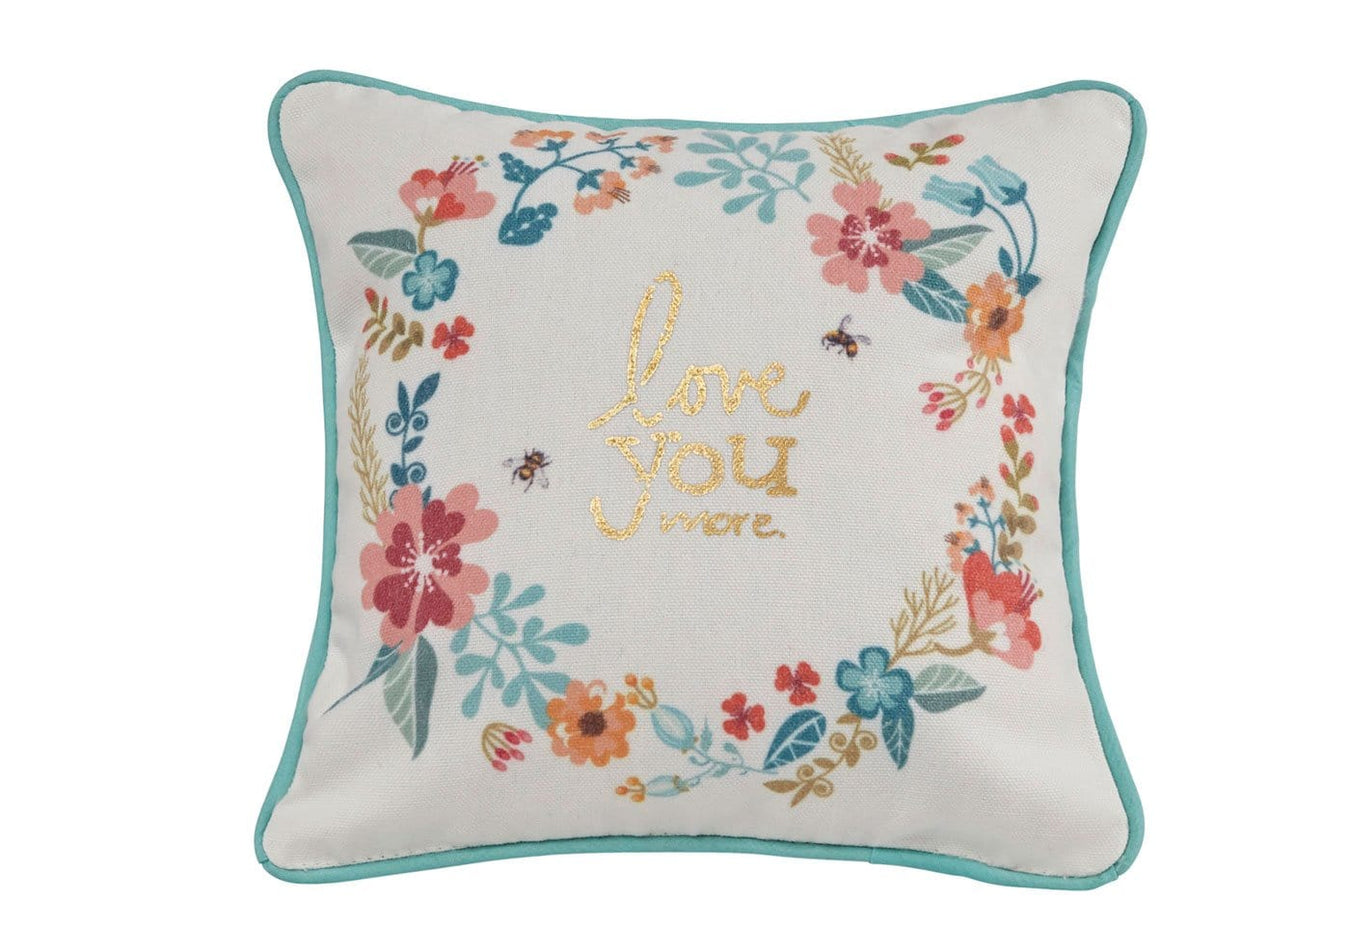 Love You More Wreath Decorative Pillow 9x9